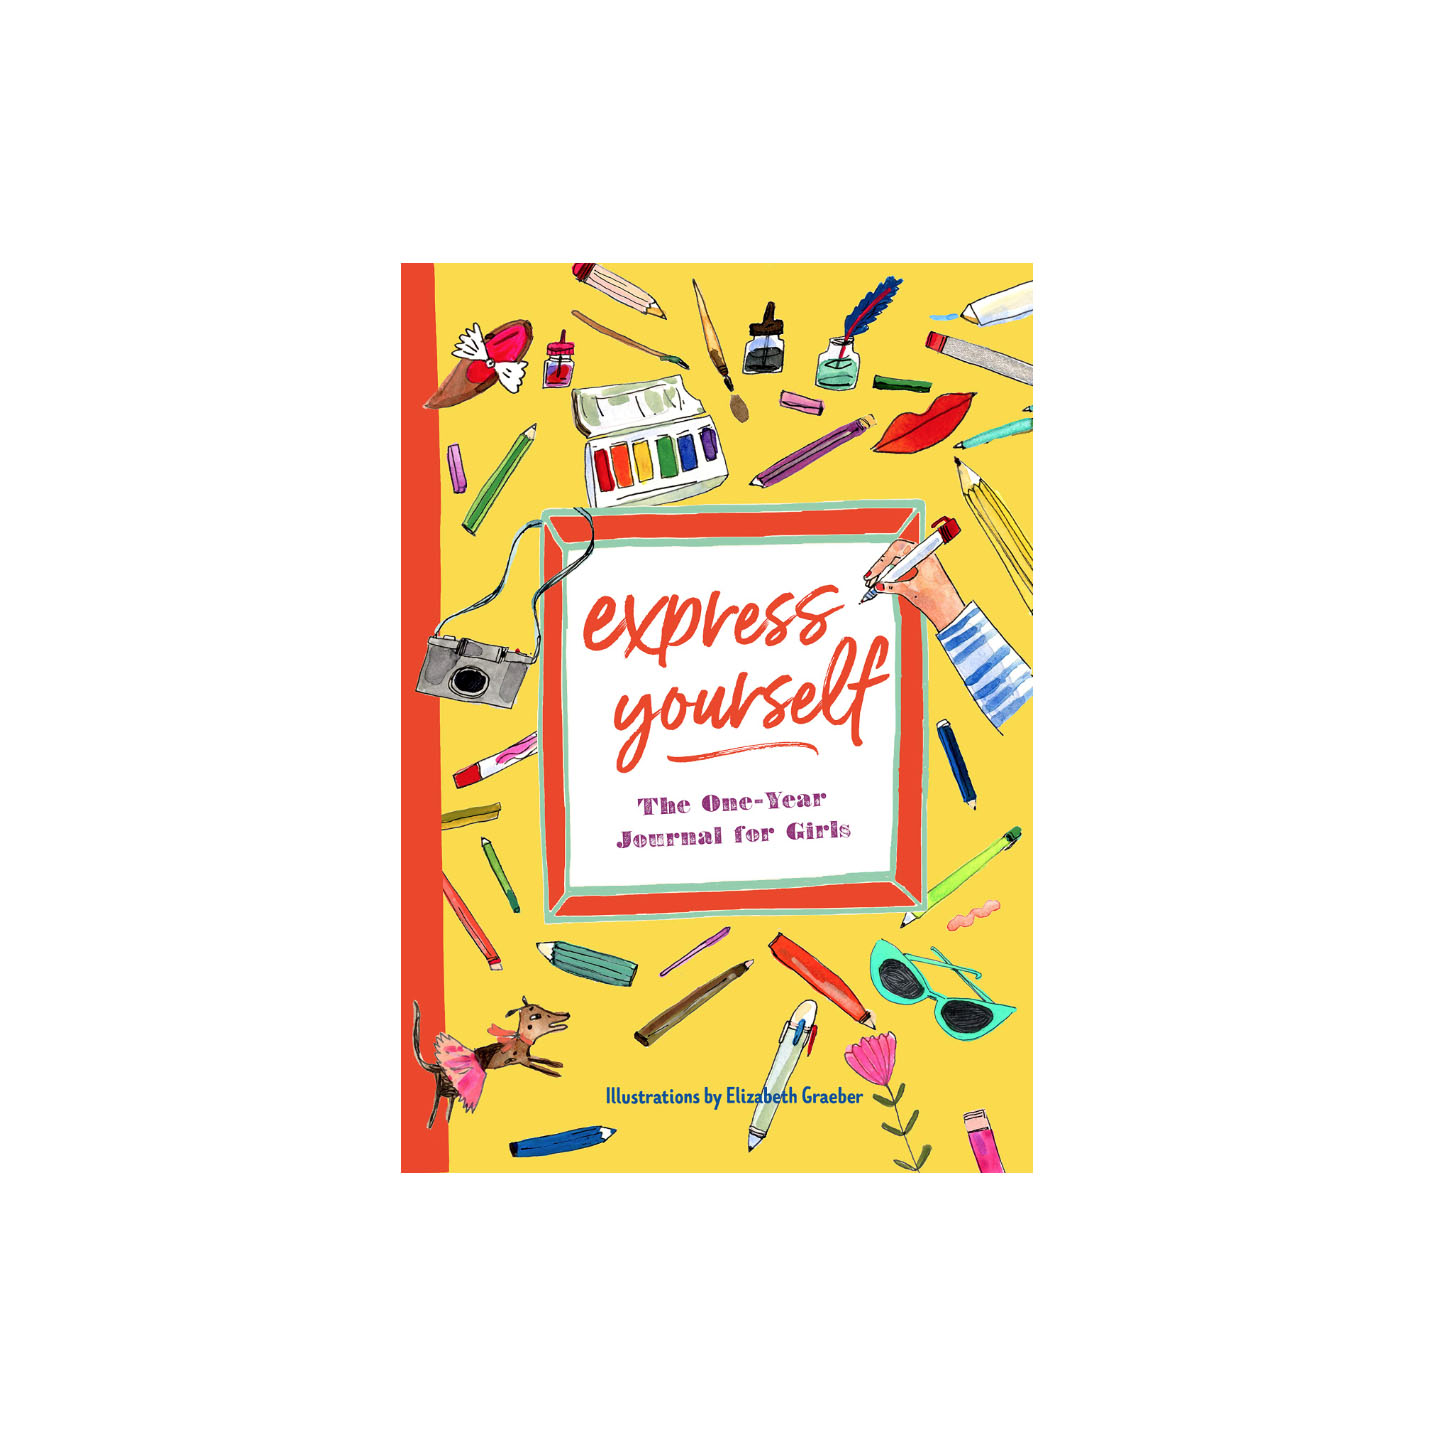 Express Yourself book.jpg